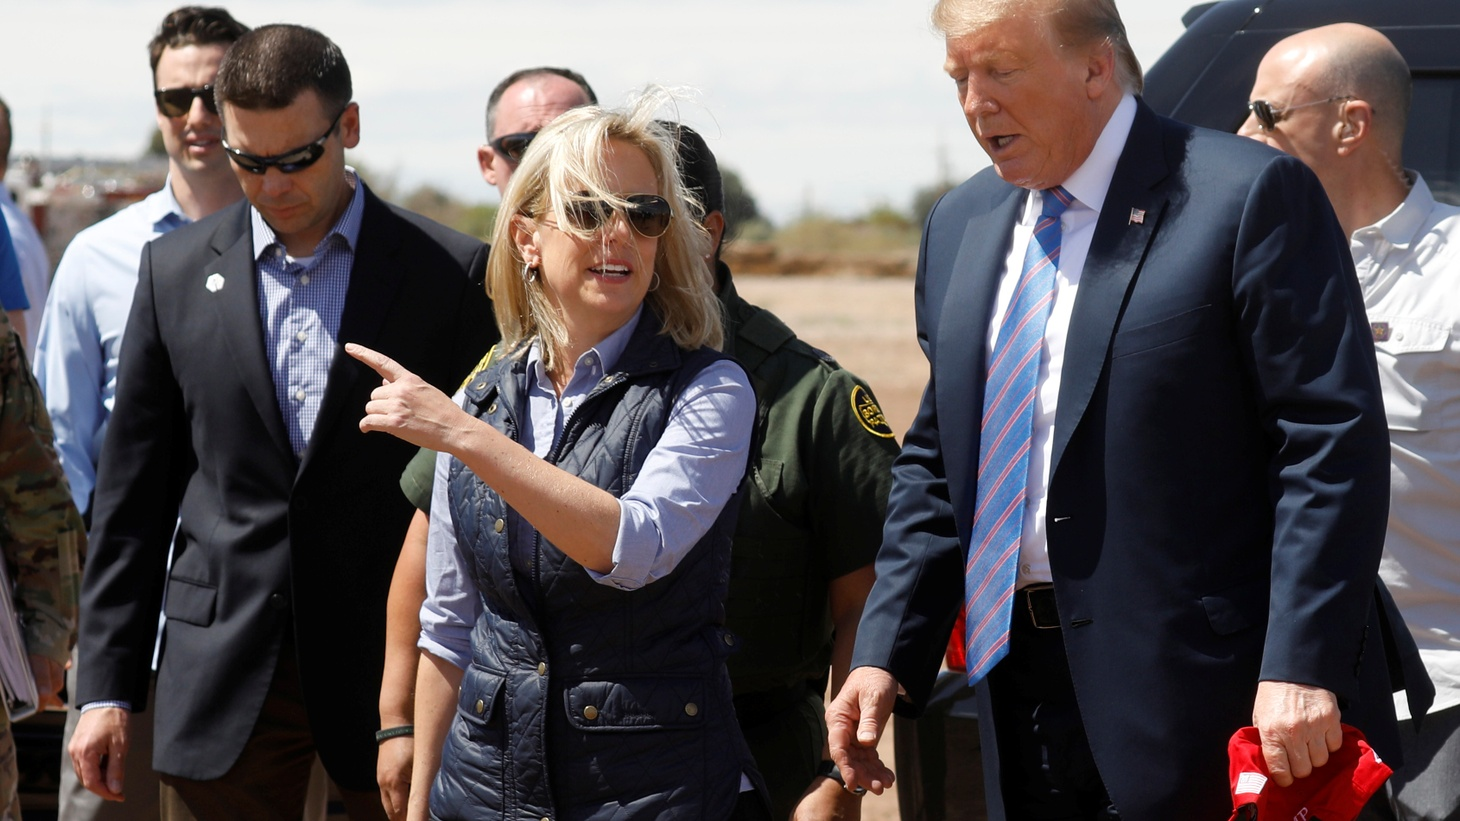 Homeland Security Secretary Kirstjen Nielsen (C) and commissioner for Customs and Border Patrol Kevin McAleenan (L) walk with U.S. President Donald Trump during a visit to a section of the border wall in Calexico California, U.S., April 5, 2019. Picture taken April 5, 2019.